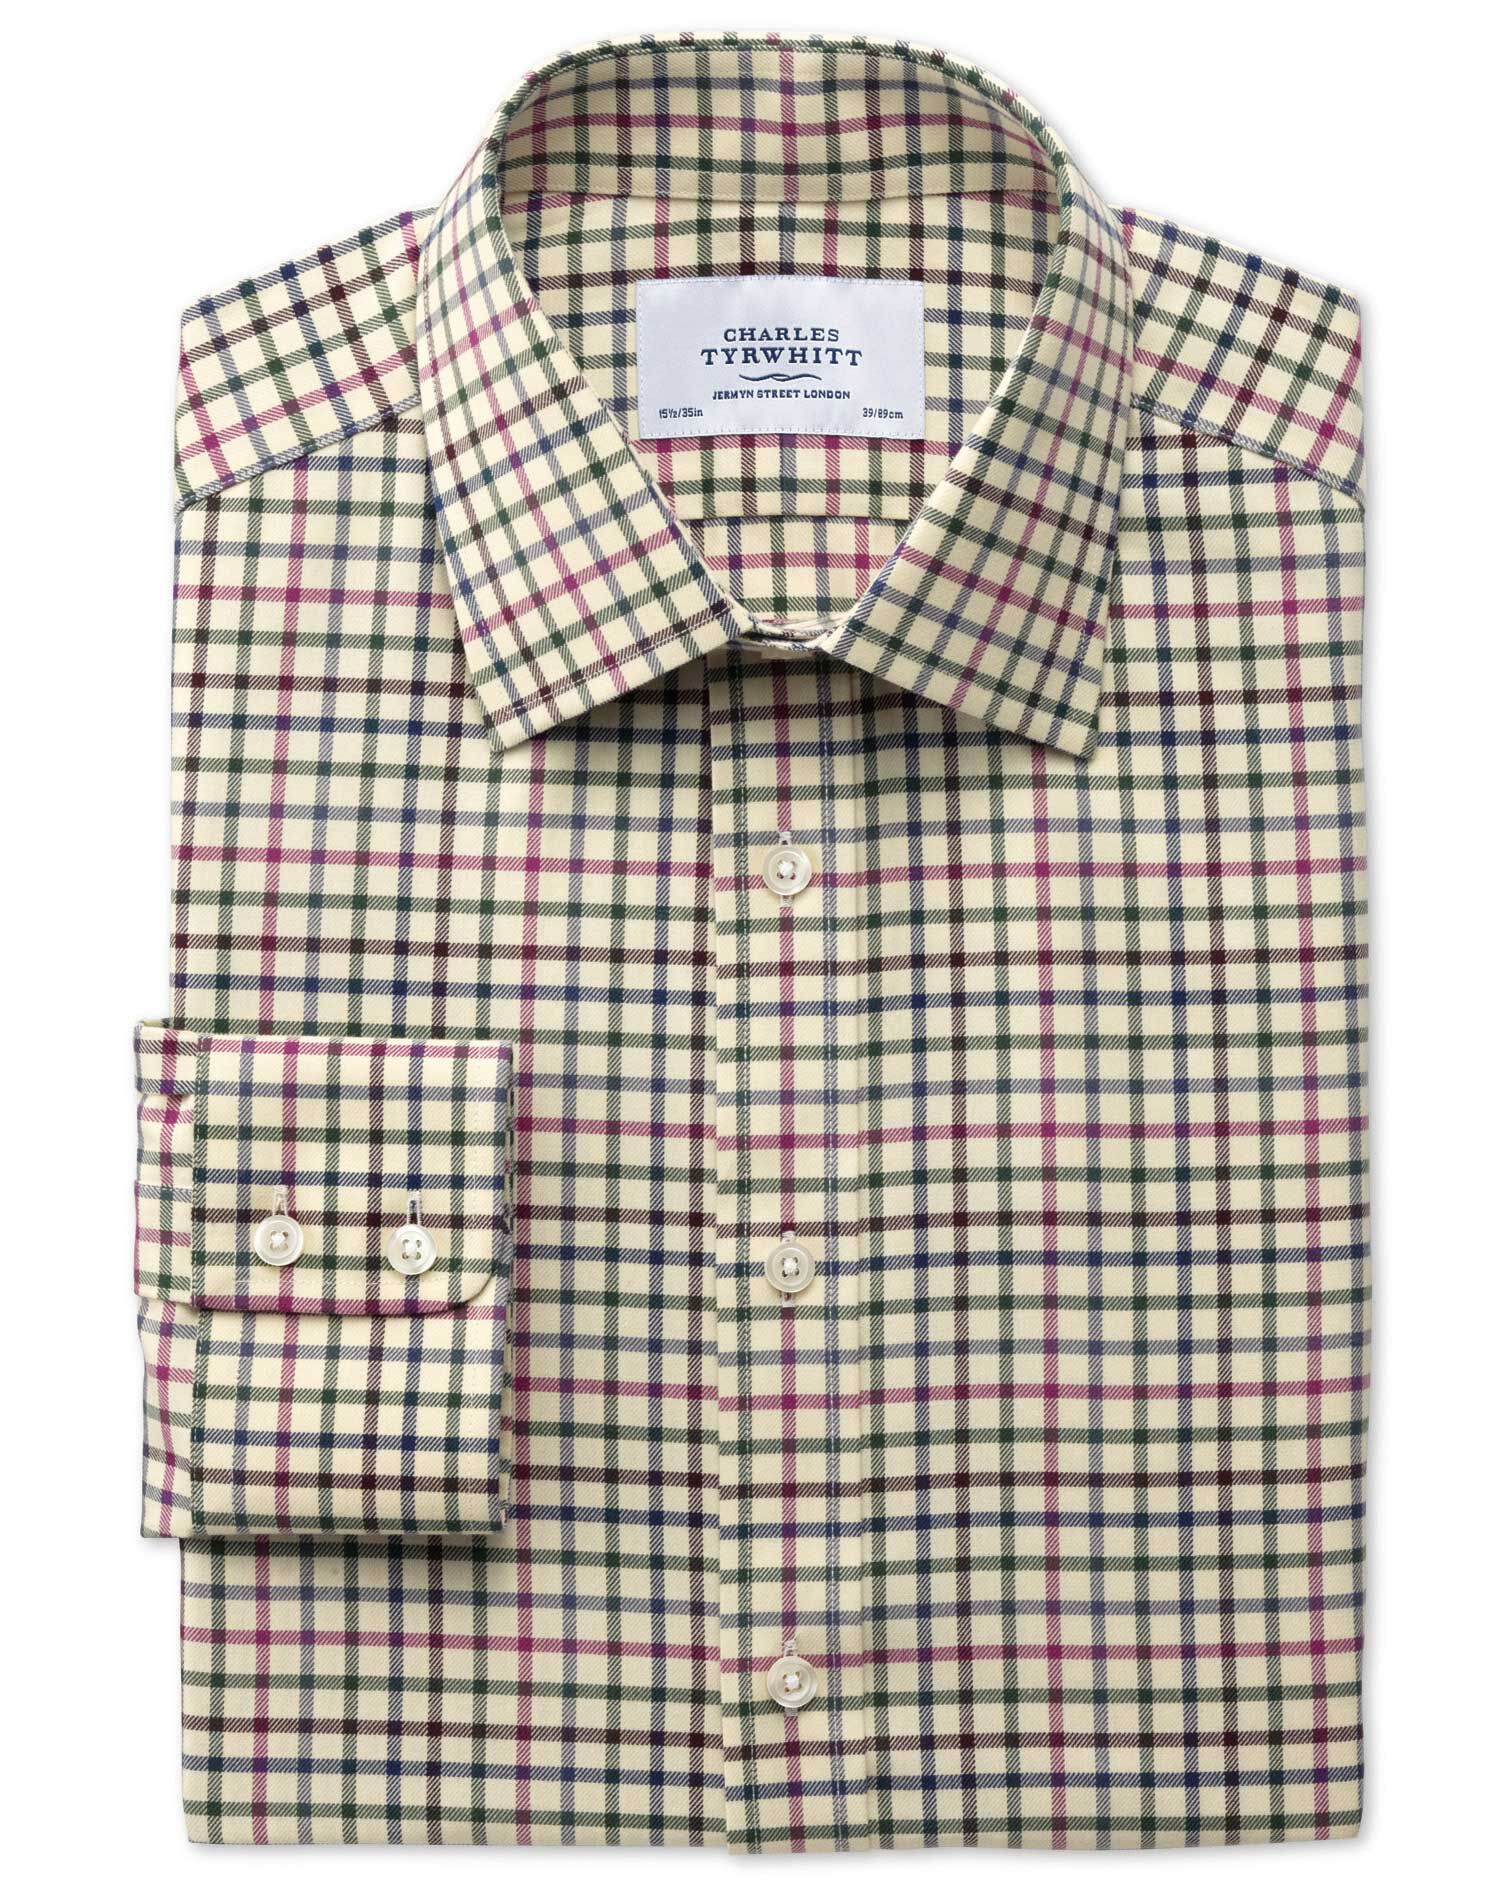 Slim Fit Country Check Pink and Green Cotton Formal Shirt Single Cuff Size 18/35 by Charles Tyrwhitt